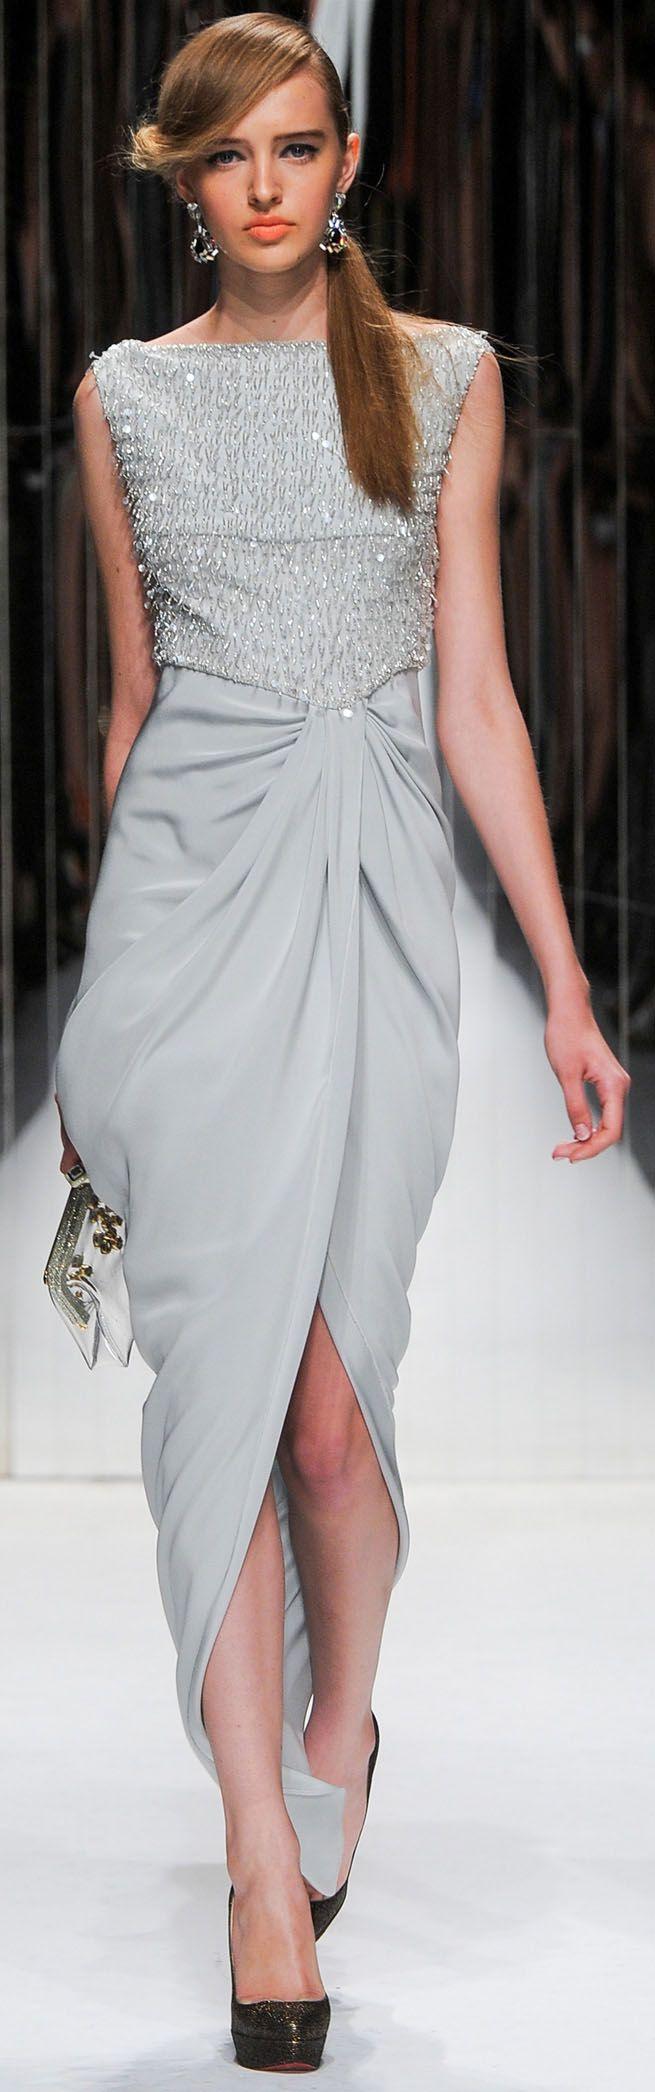 Jenny Packham Spring Summer 2013 Ready-To-Wear Collection